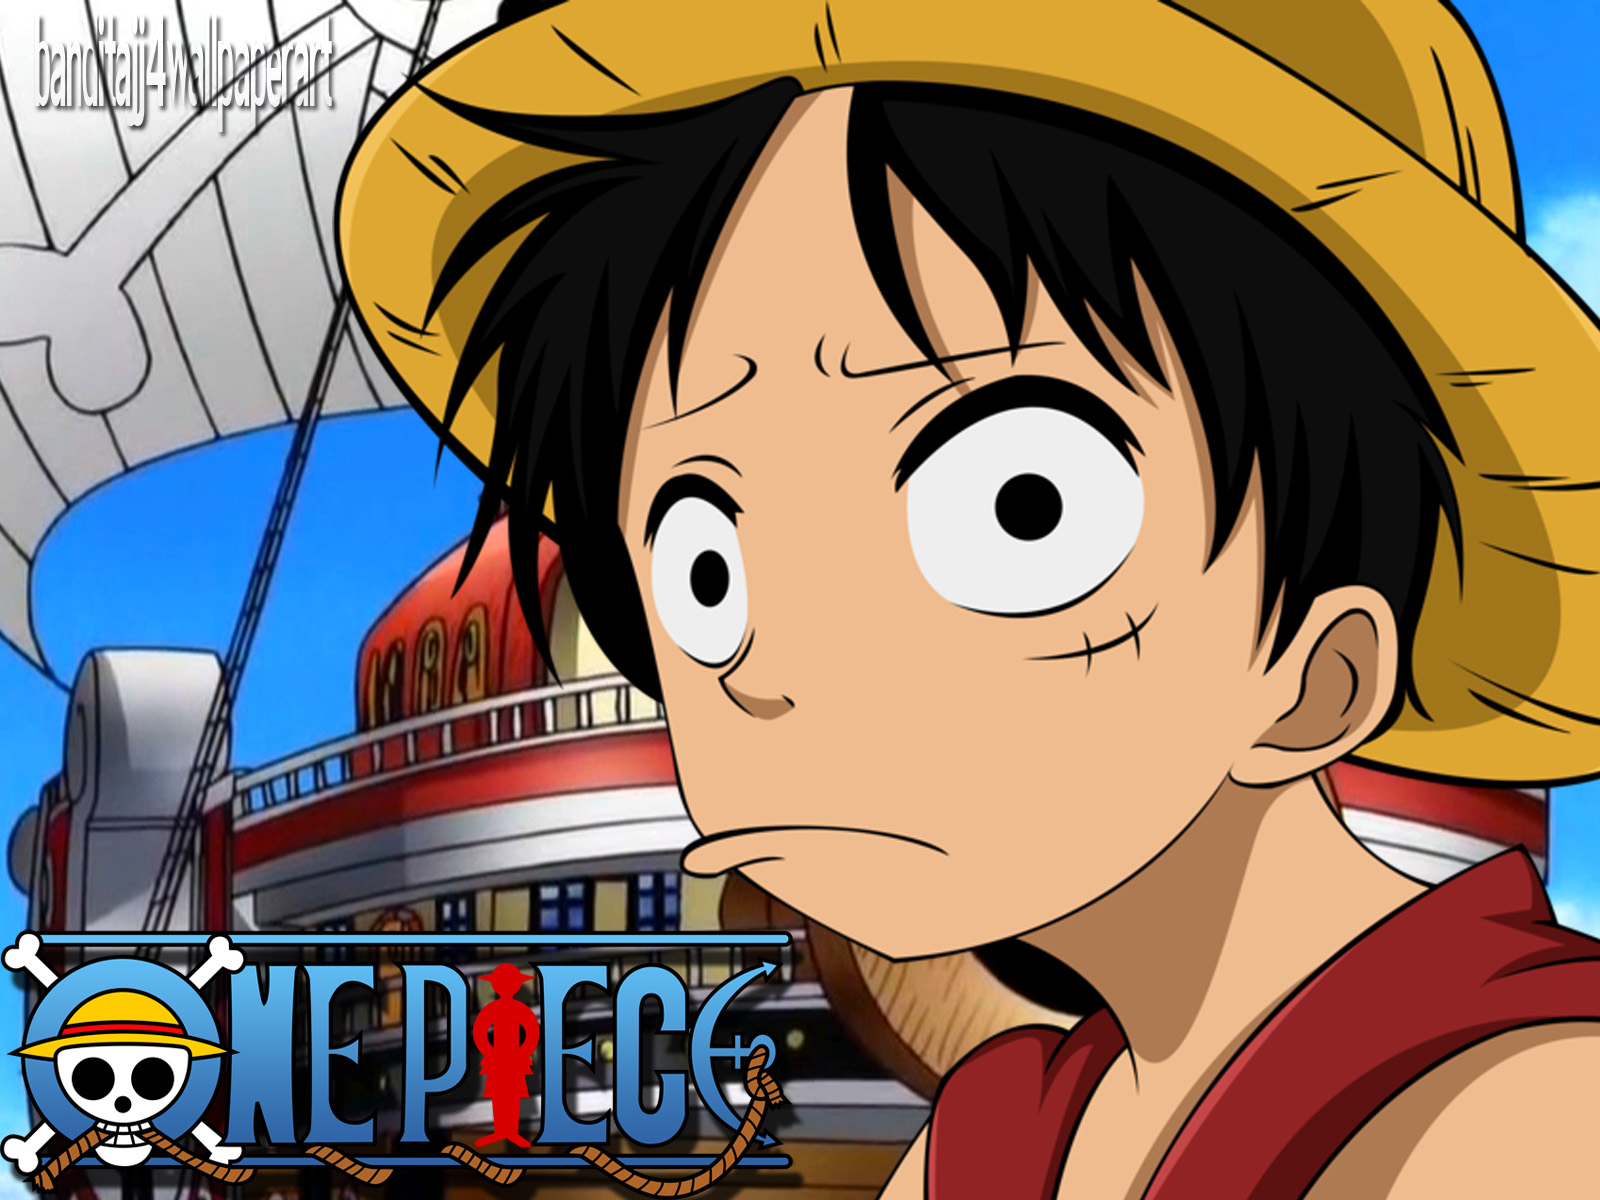 http://3.bp.blogspot.com/-DSsoZ7FchOE/UHGNYuhsNYI/AAAAAAAACDY/Vi0ZmpGL28g/s1600/Luffy+In+New+World+Wallapper.jpg